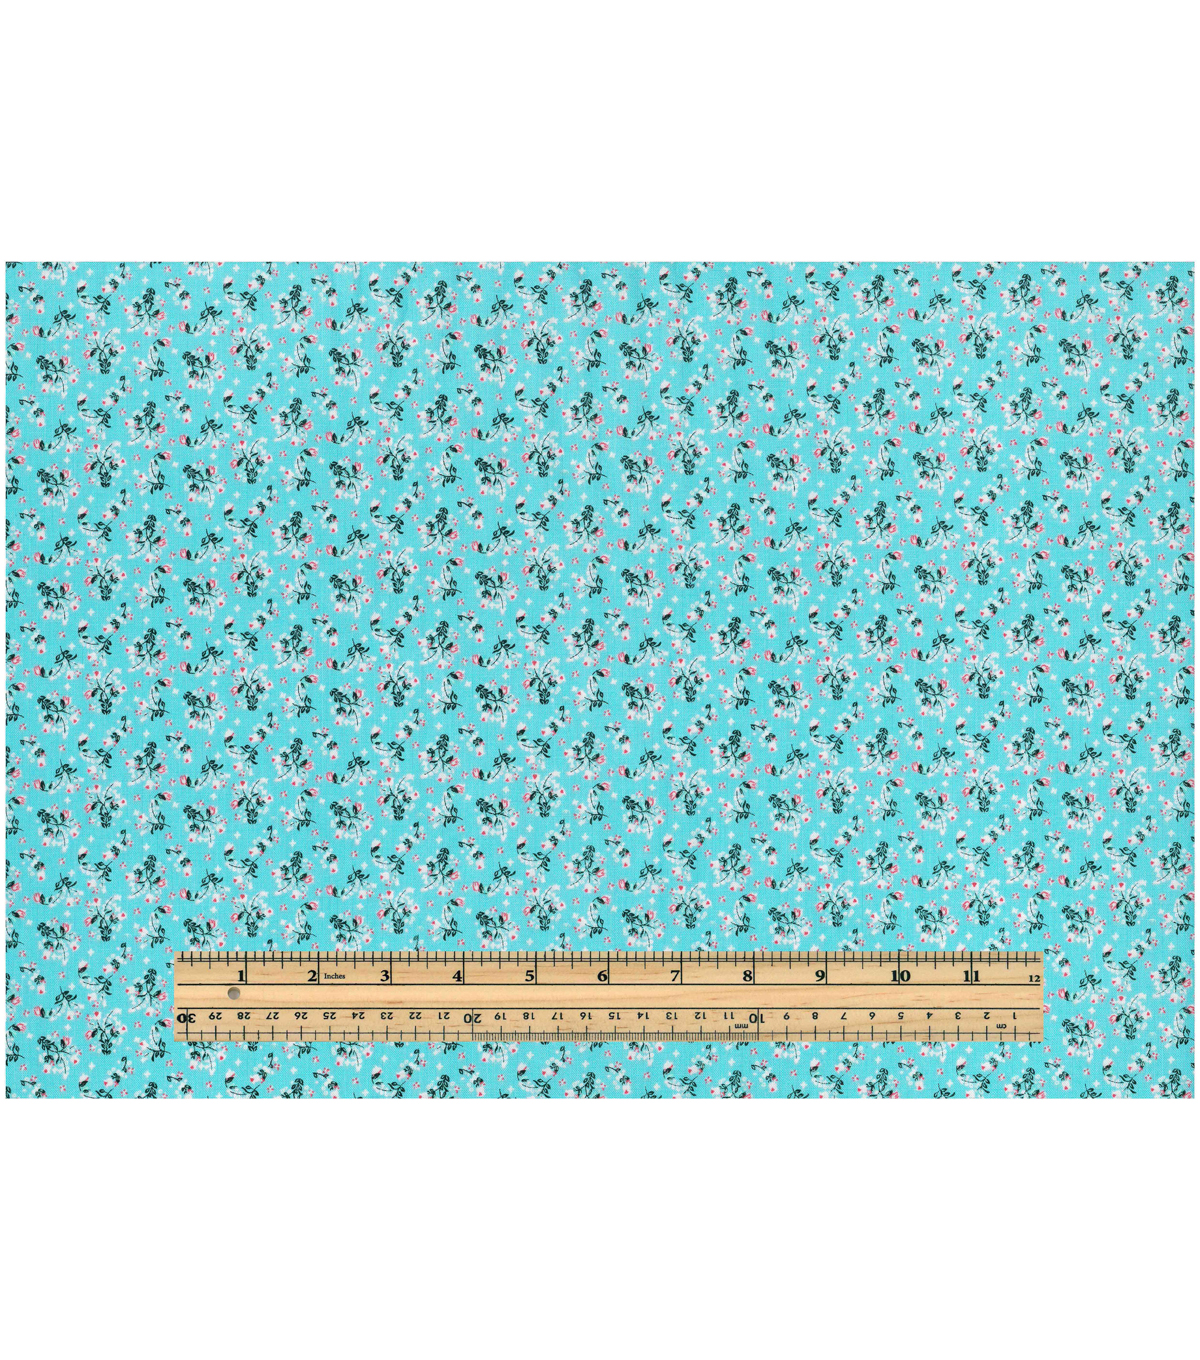 Keepsake Calico™ Cotton Fabric 43\u0022-Calico Floral Blue